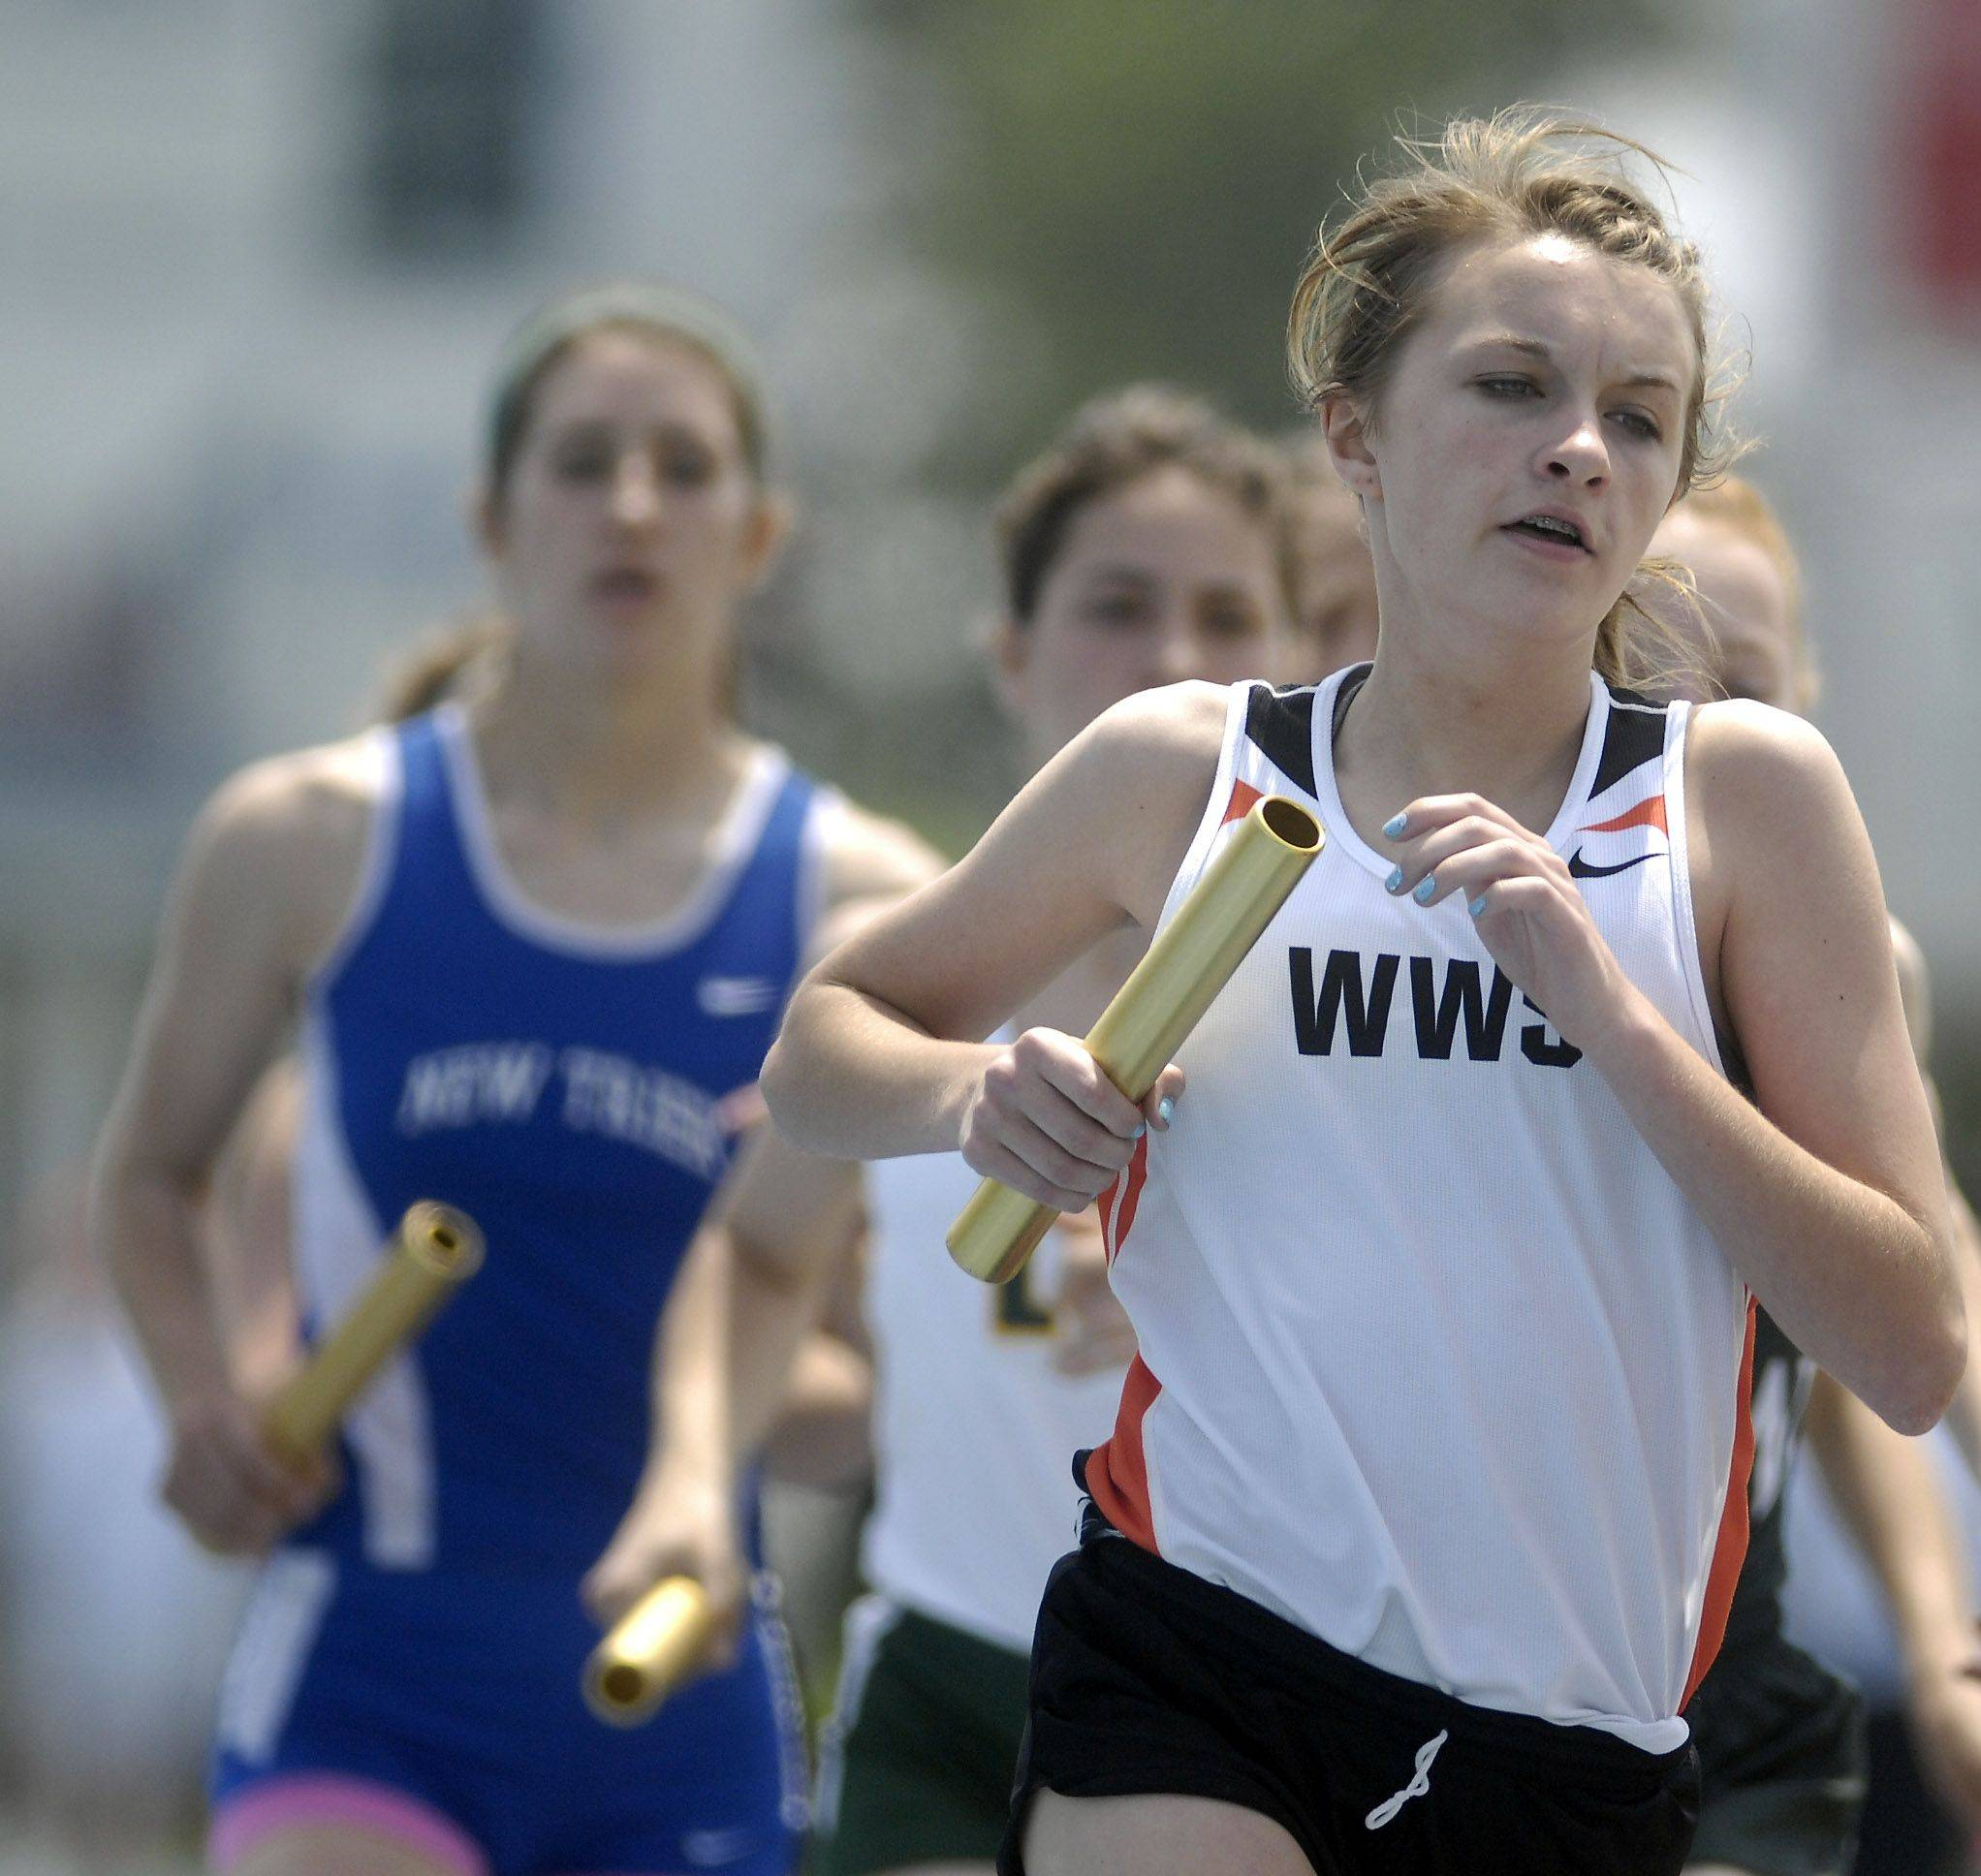 Wheaton Warrenville South's Mikayla Kightlinger runs her leg of the 4x800-meter relay Friday in Charleston.